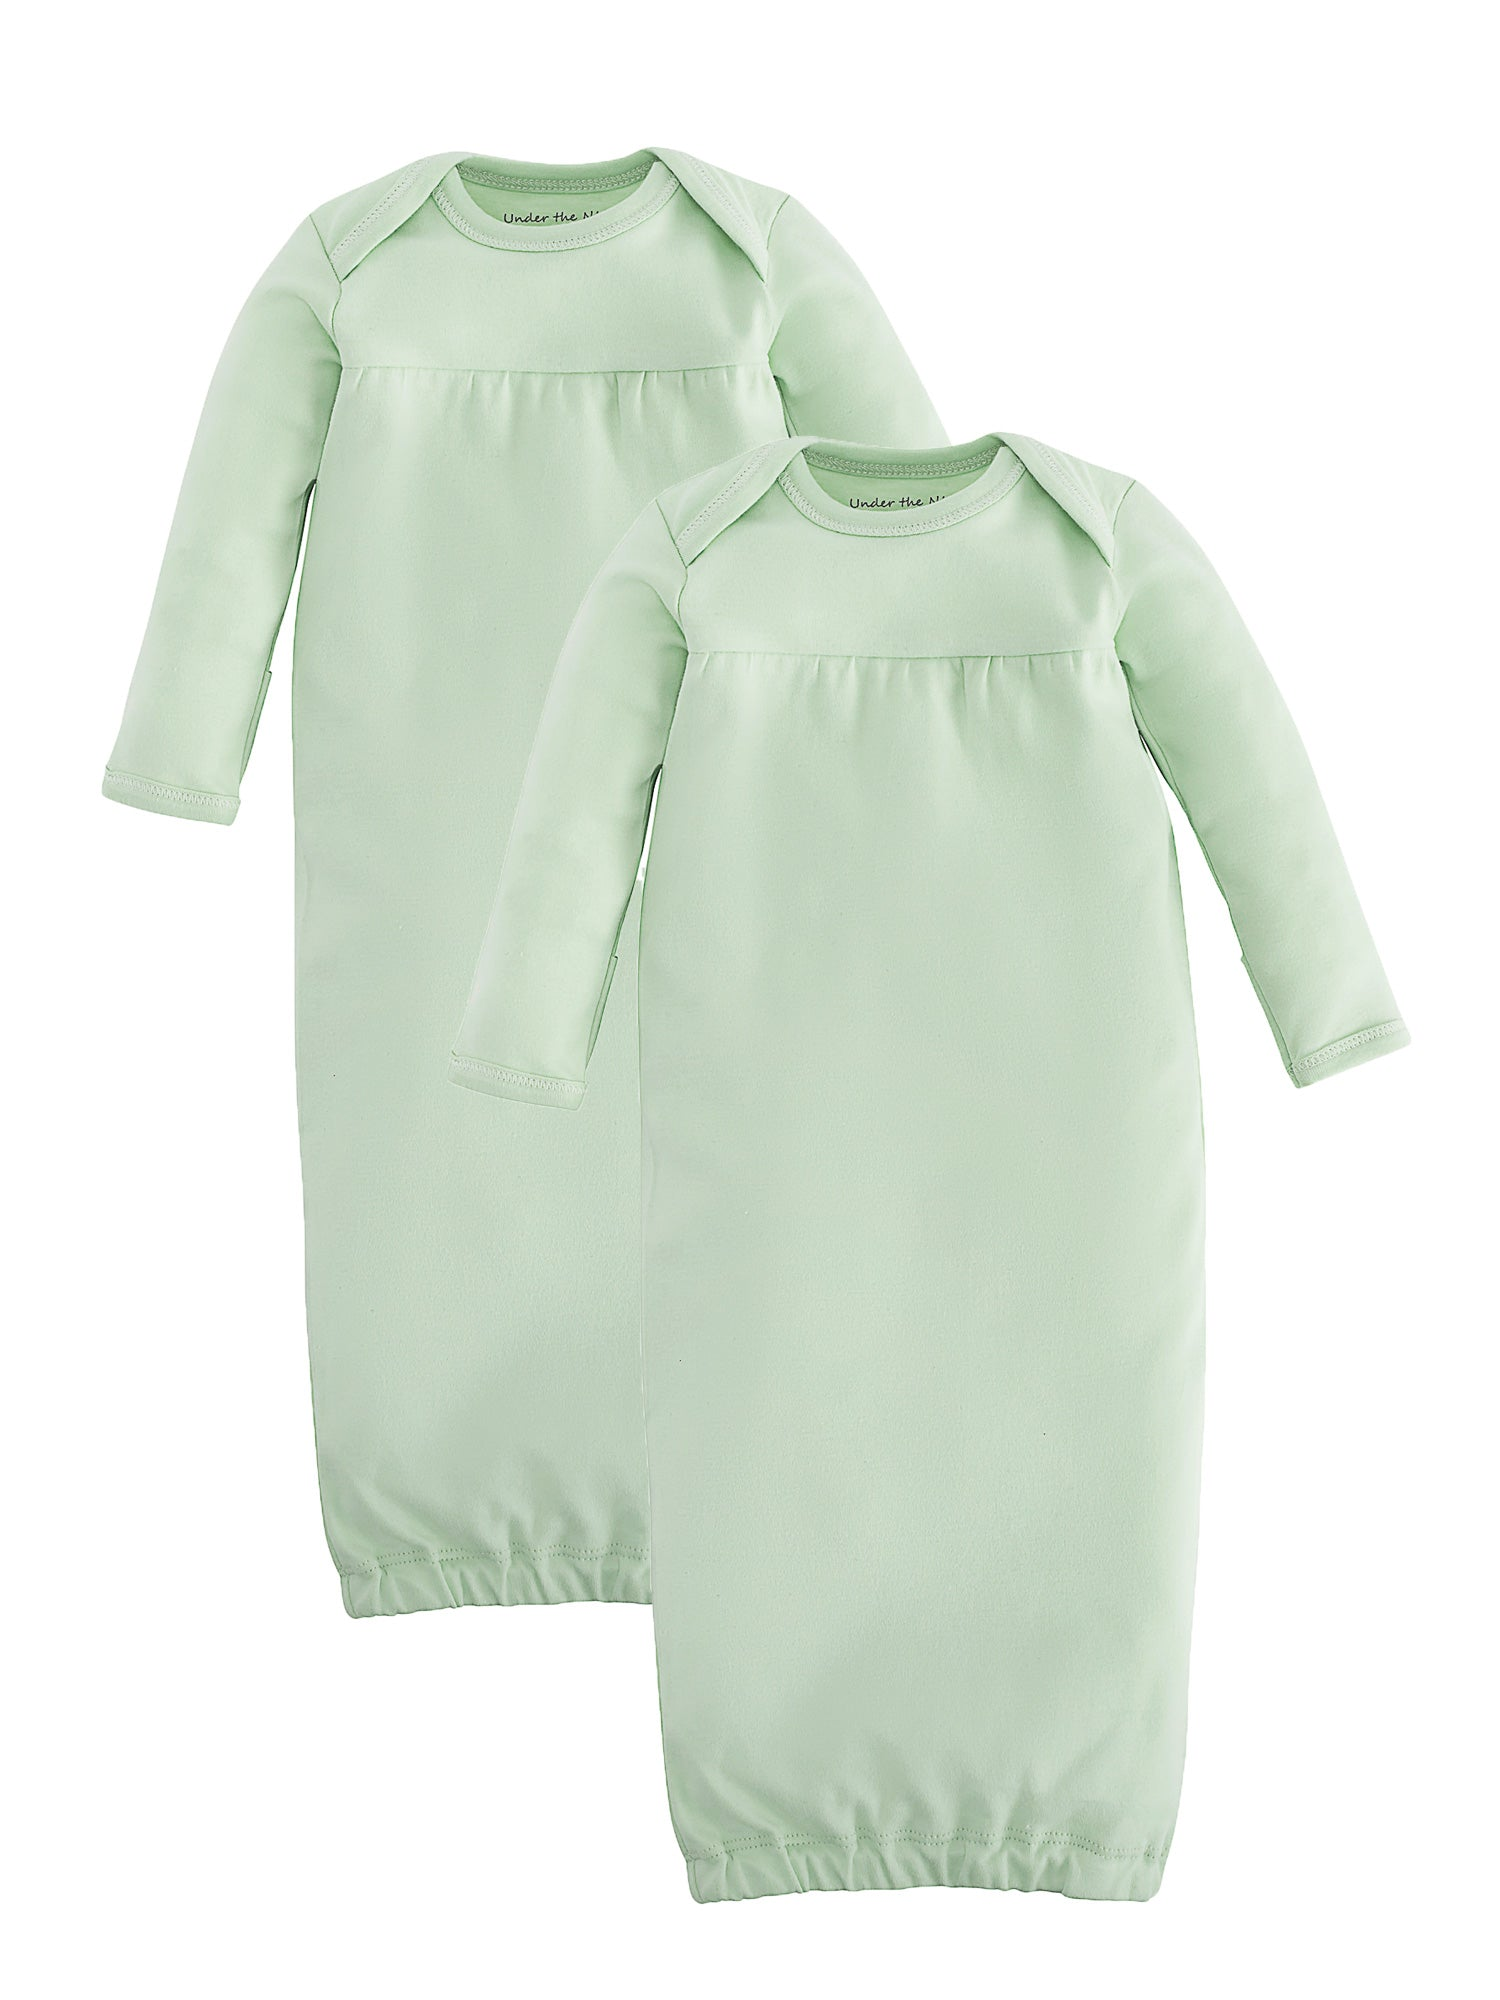 bdeaf1db1 Organic Cotton Unisex Green Baby Gown Basics Value Pack Size 0-3m ...